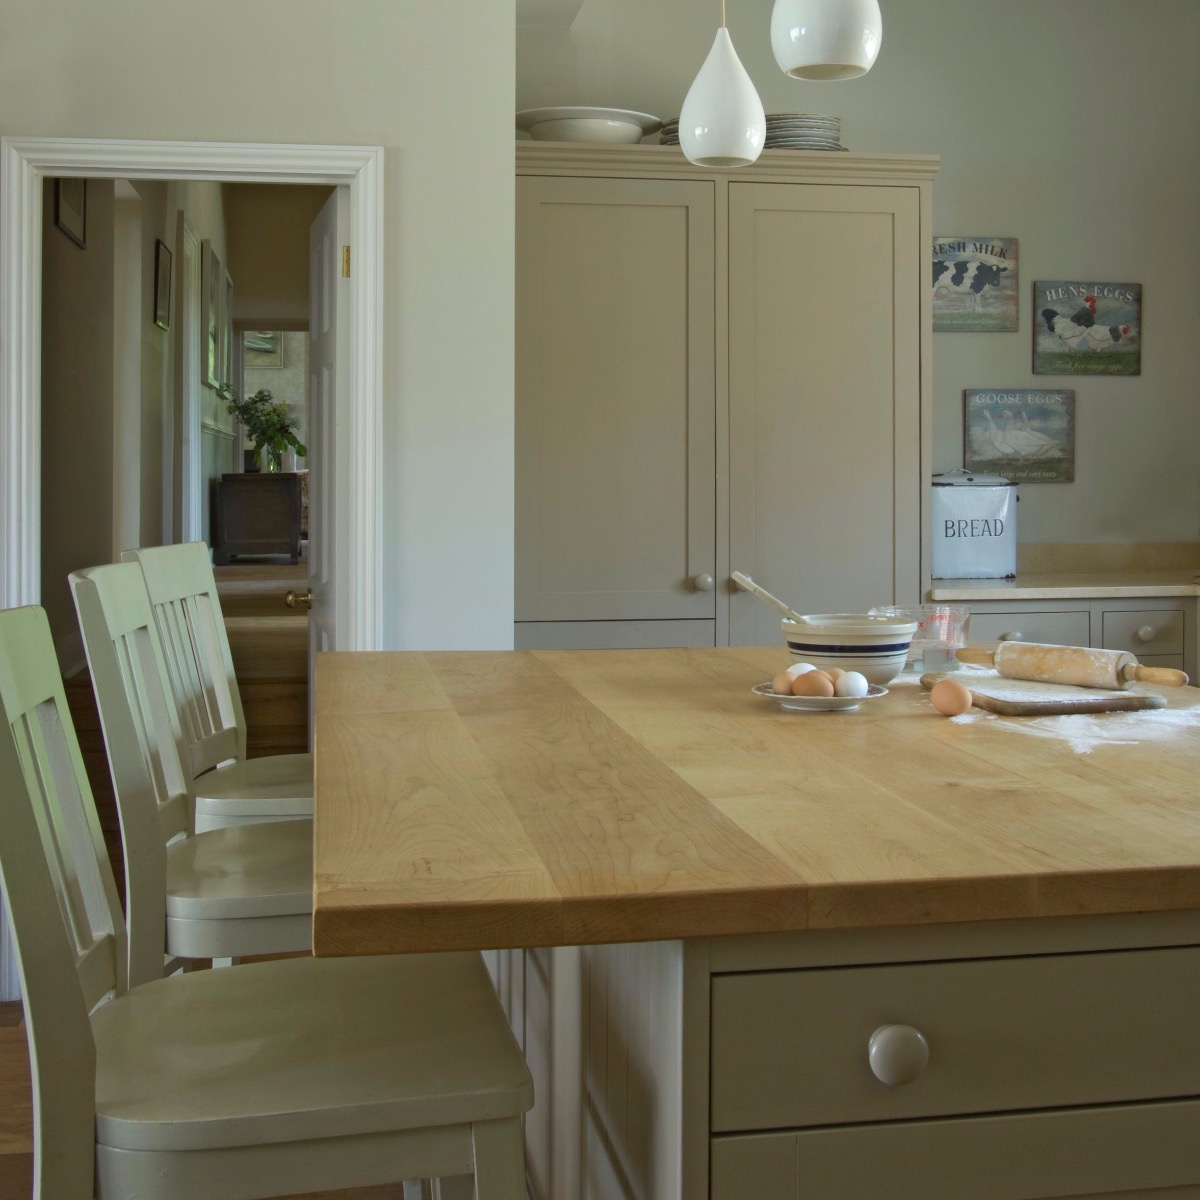 Esszimmer mit farrow and Ball Lack in Estate Eggshell